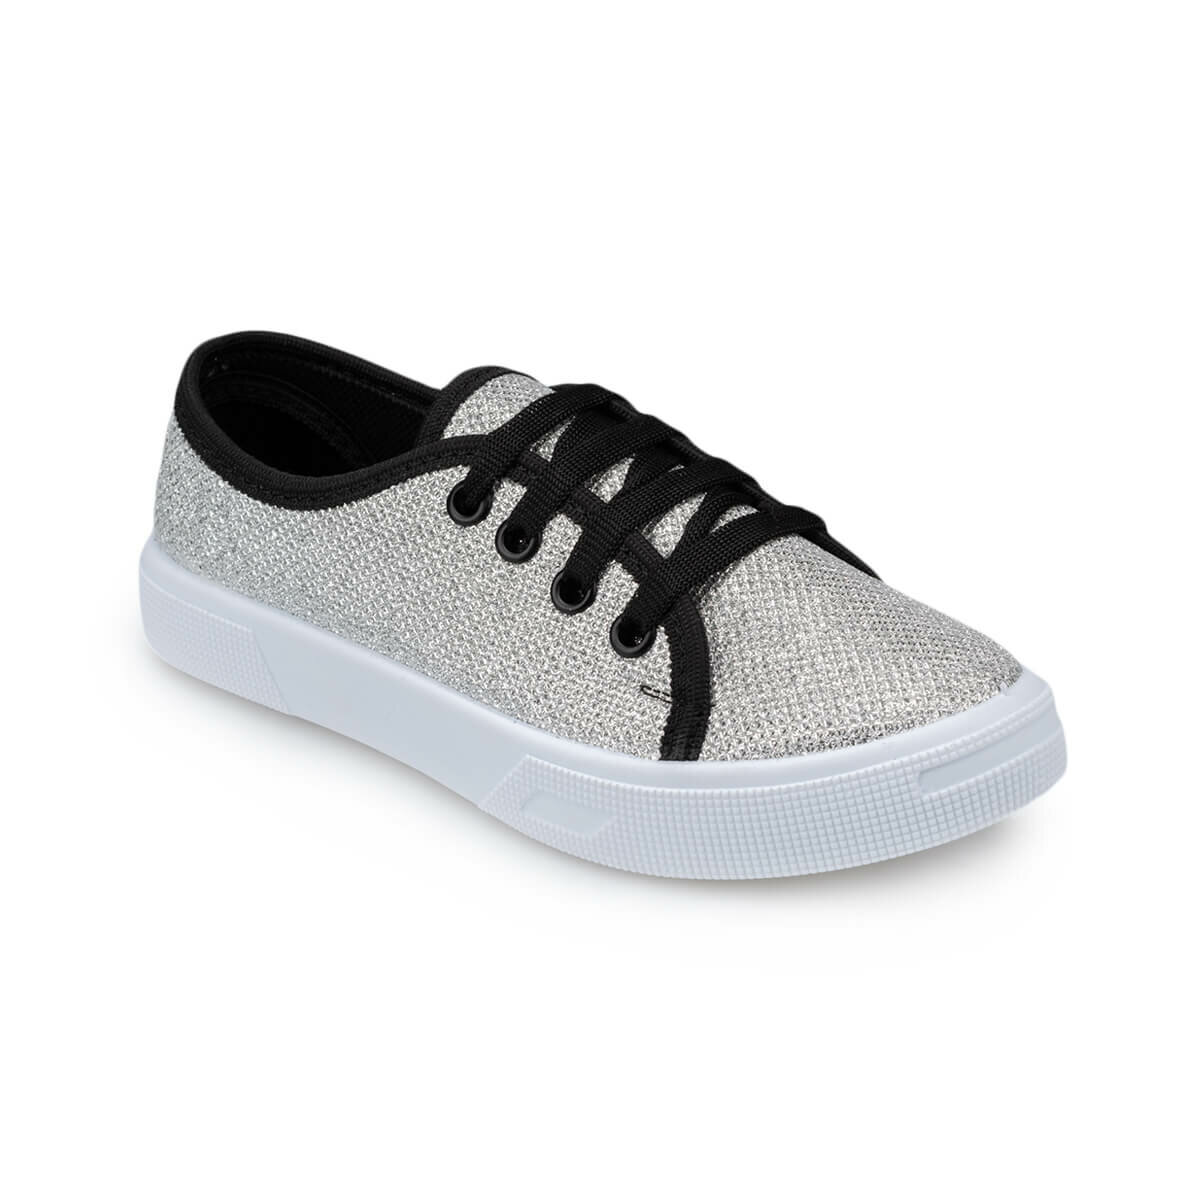 FLO 91.509151.F Gray Female Child Shoes Polaris